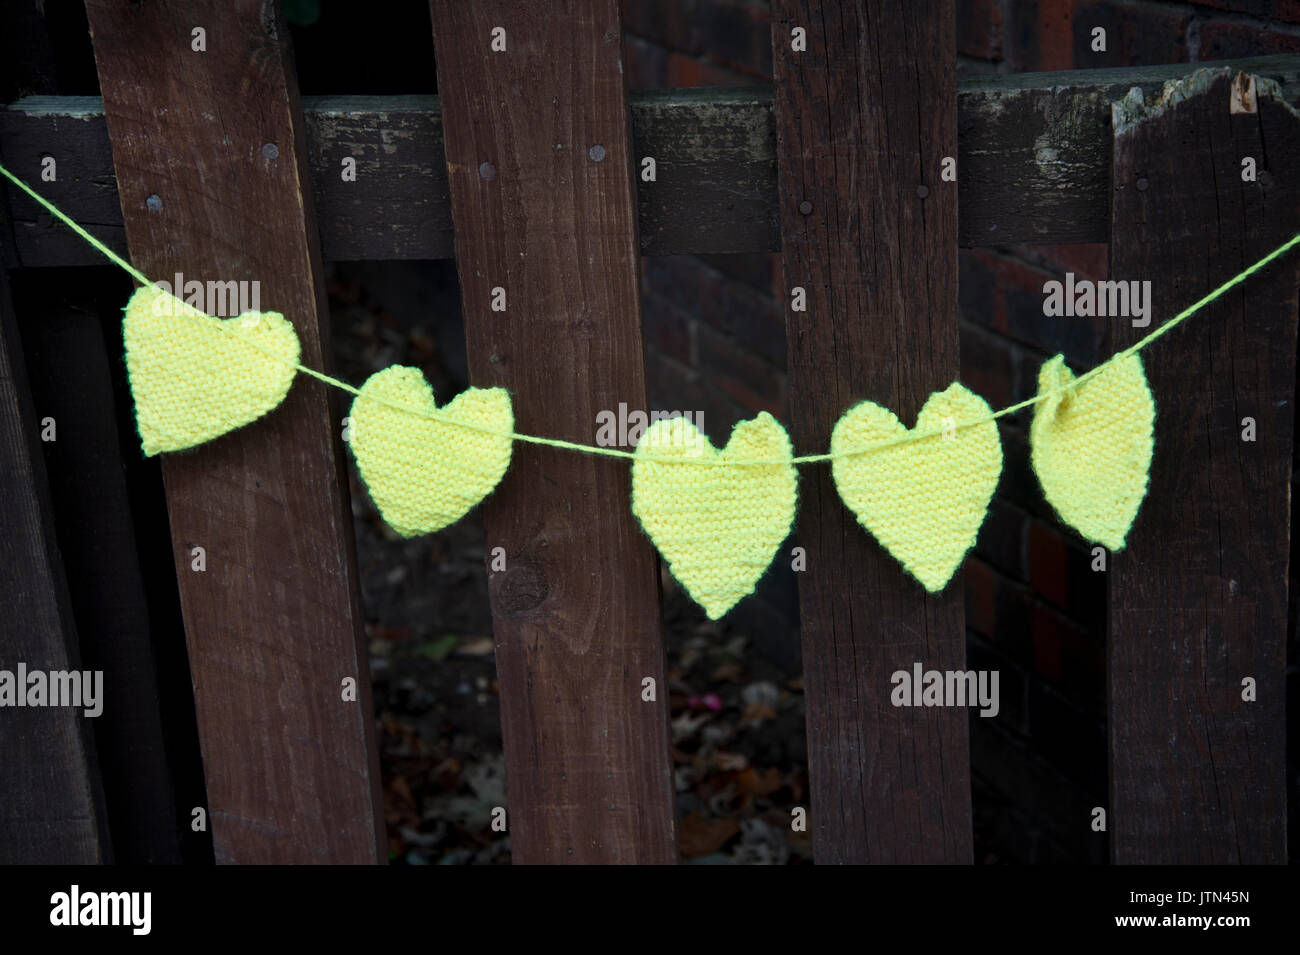 Grenfell Tower, West London. Aftermath of the tragedy. Yellow crocheted hearts to honour the missing - Stock Image